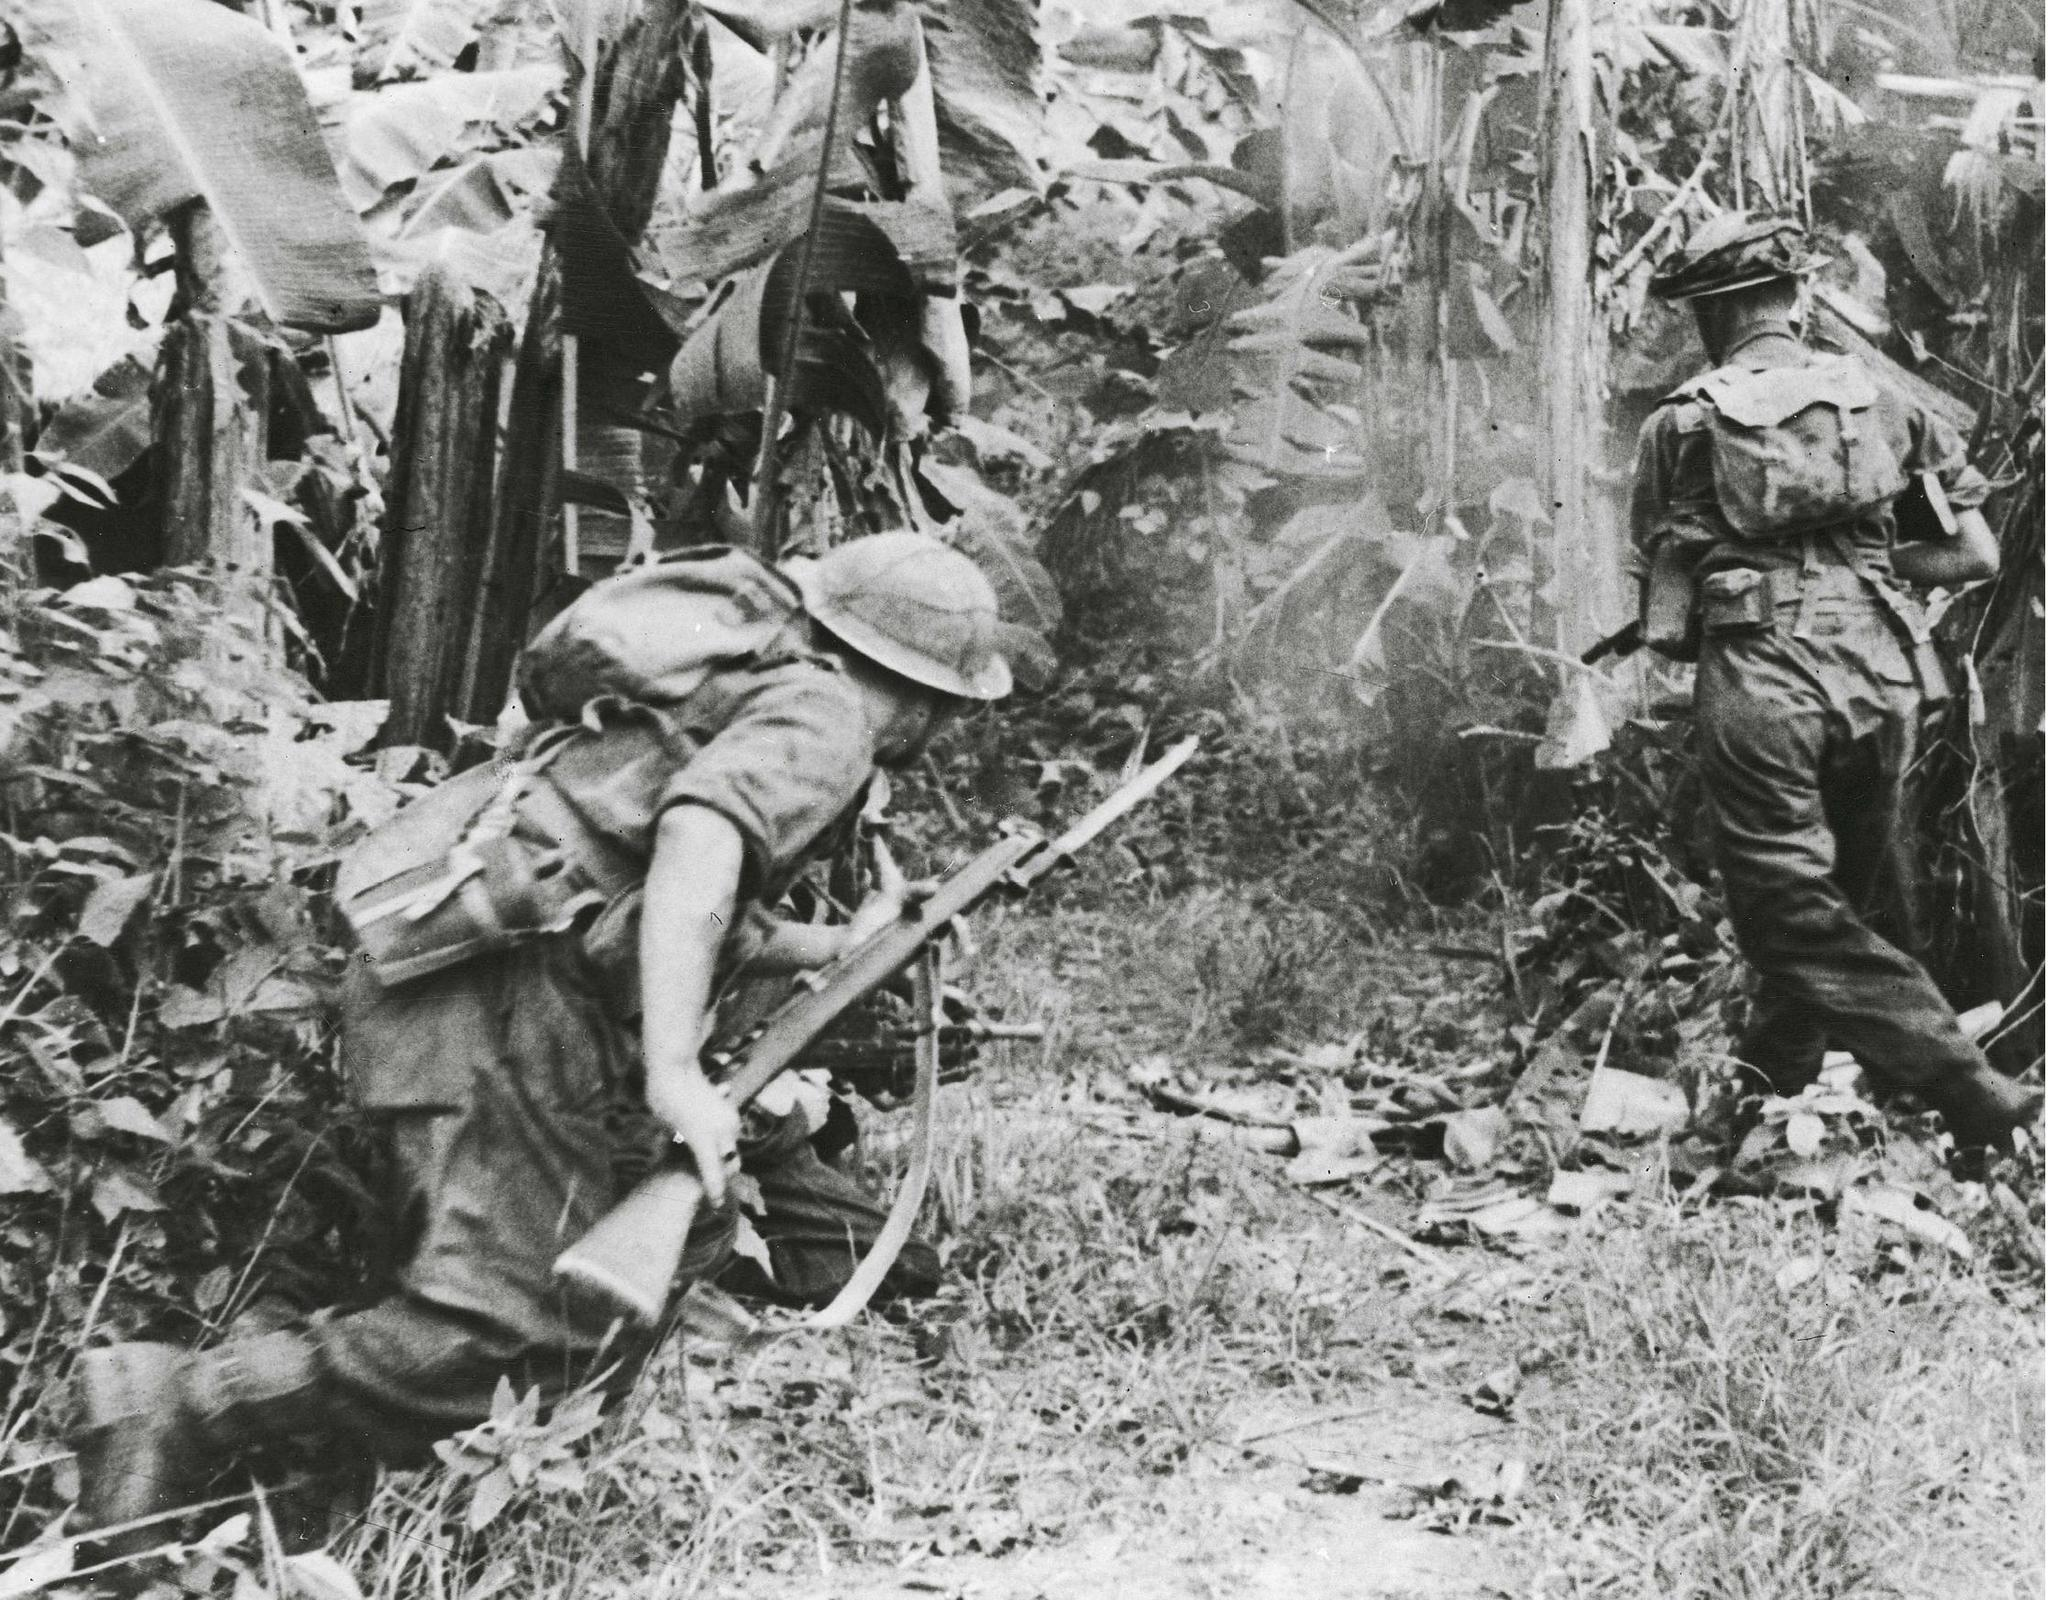 Allied troops fighting in the Far East